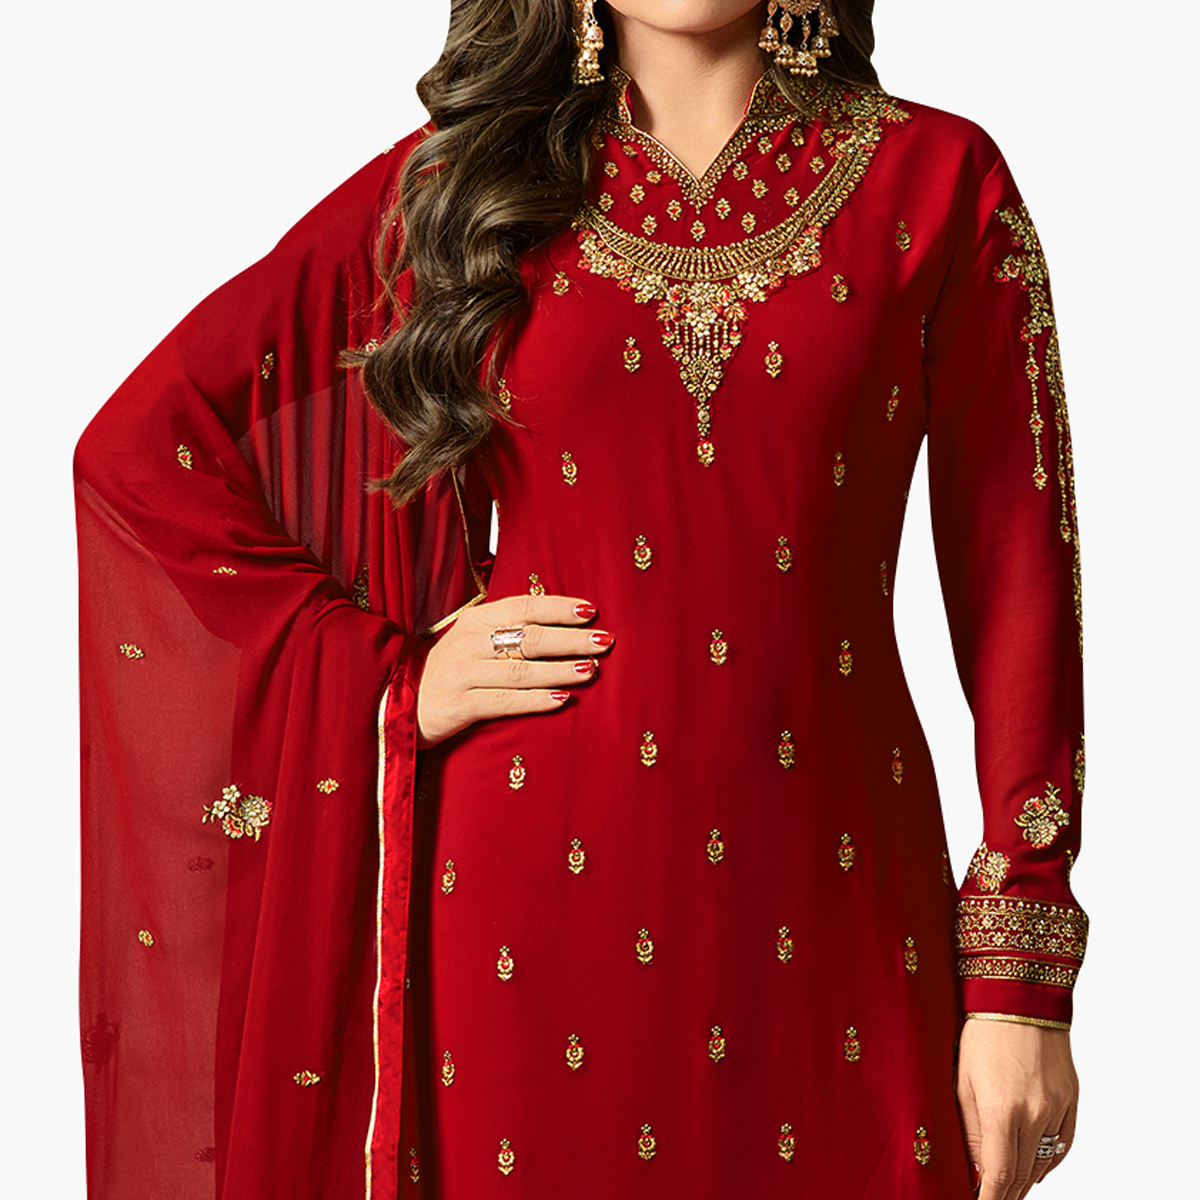 Eye-catching Crimson Red Colored Party Wear Embroidered Georgette Salwar Suit